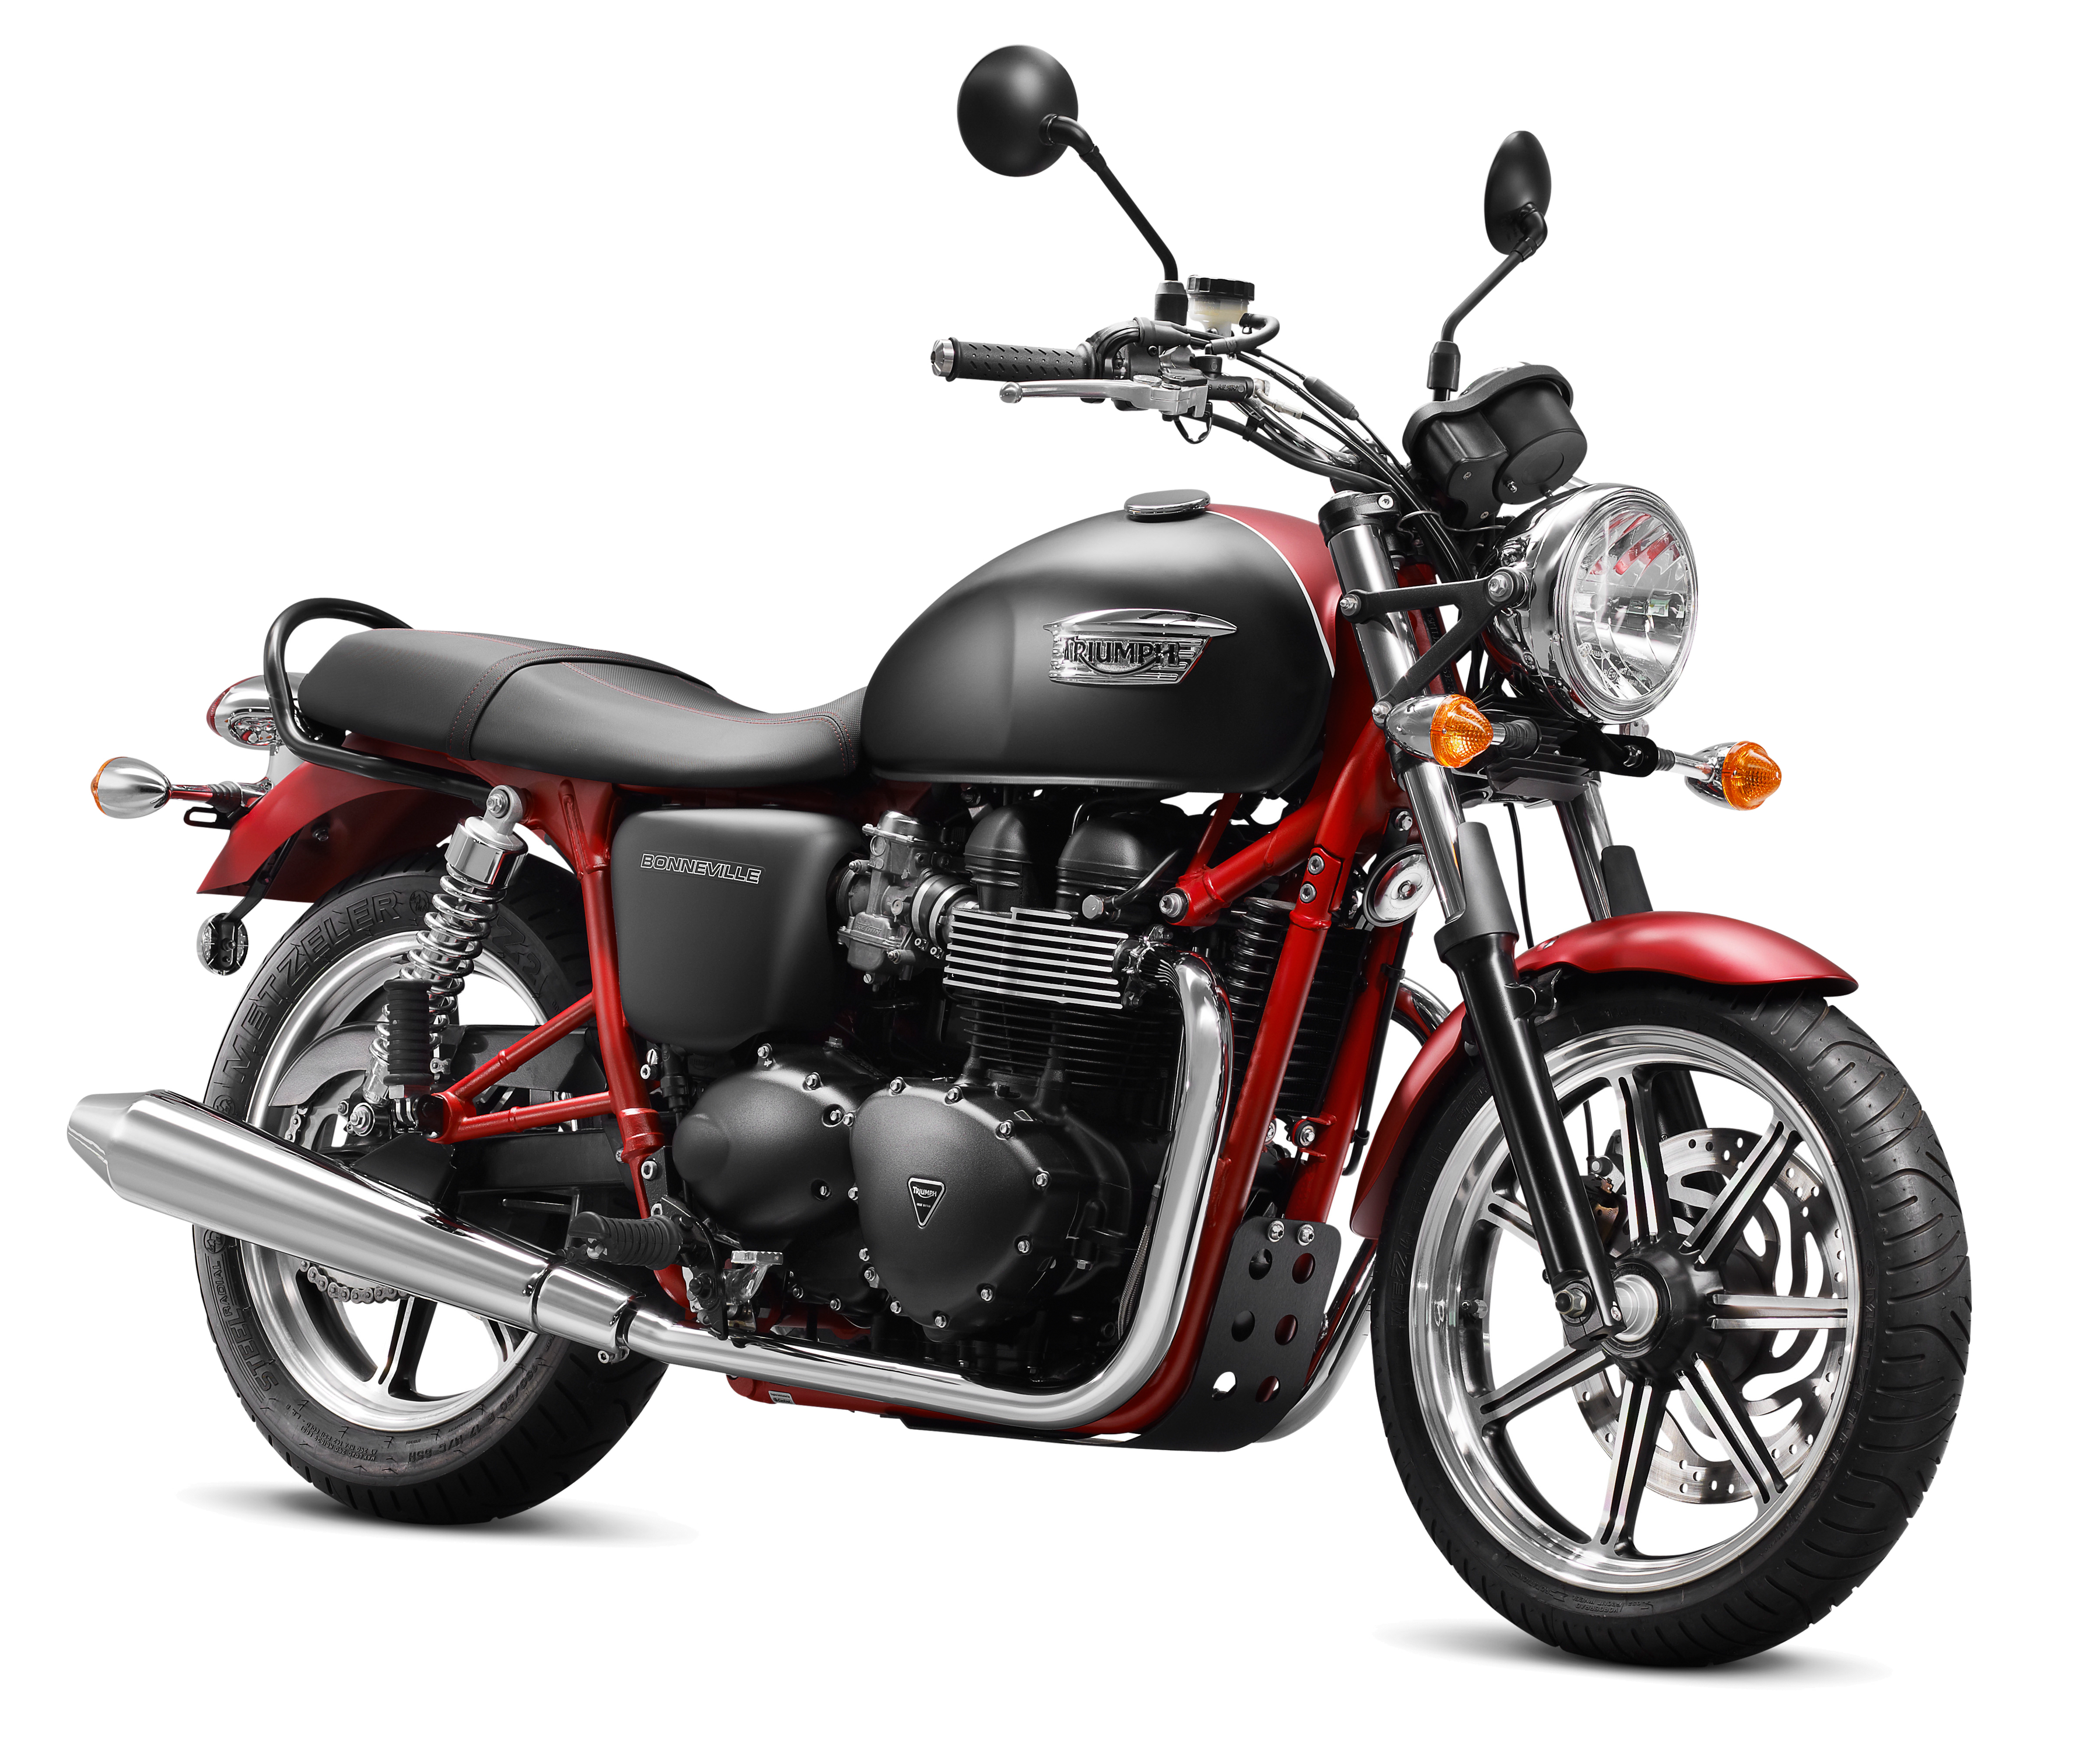 Motorcycle png. Motocycles pinterest cars motorcyclepngpng